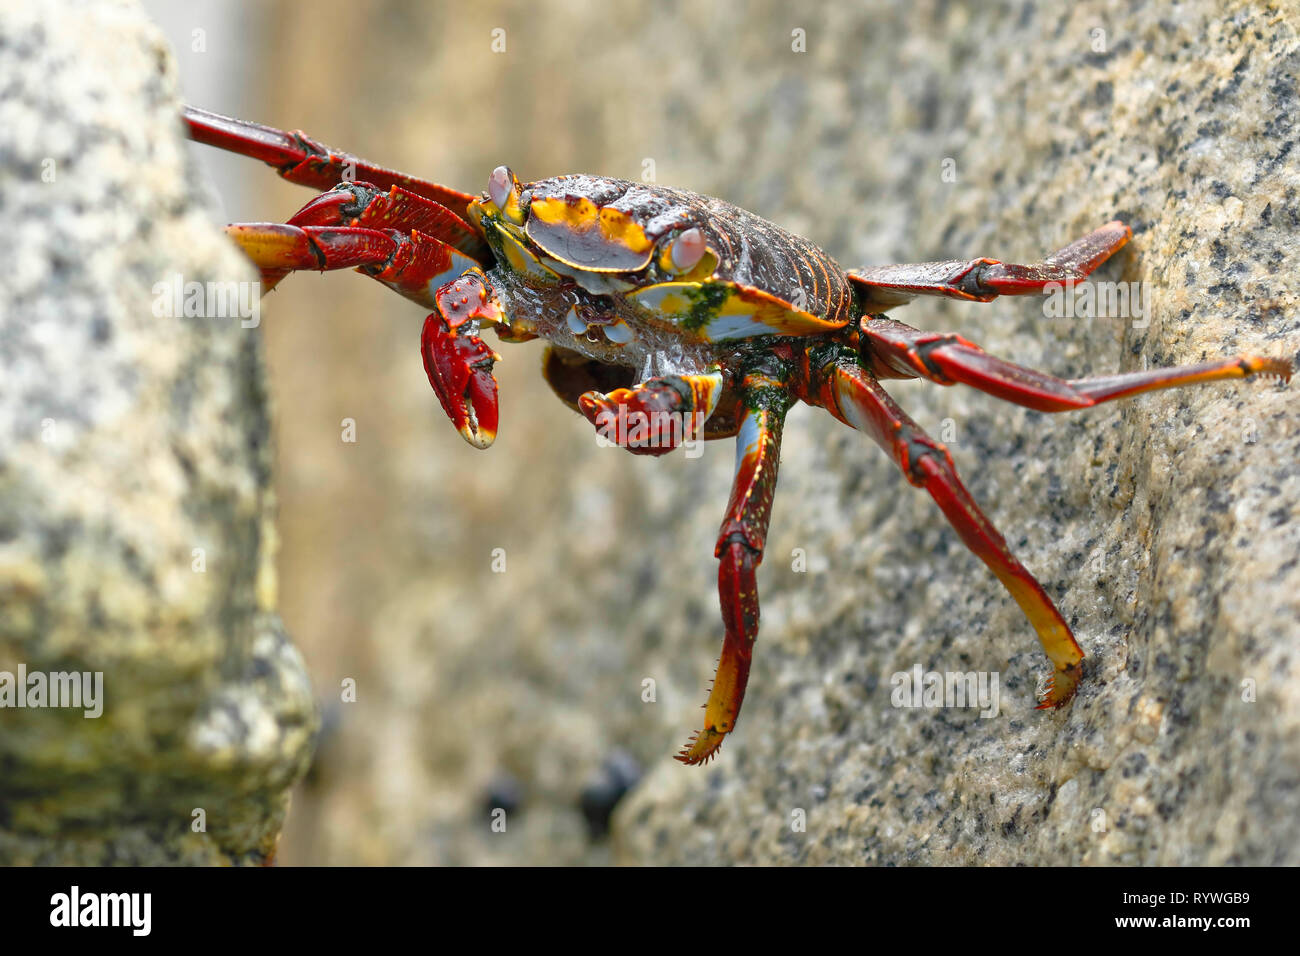 Sally Lightfoot Crab or Rock Crab (Grapsus grapsus) searching for food among the rocks where the waves hit. - Stock Image